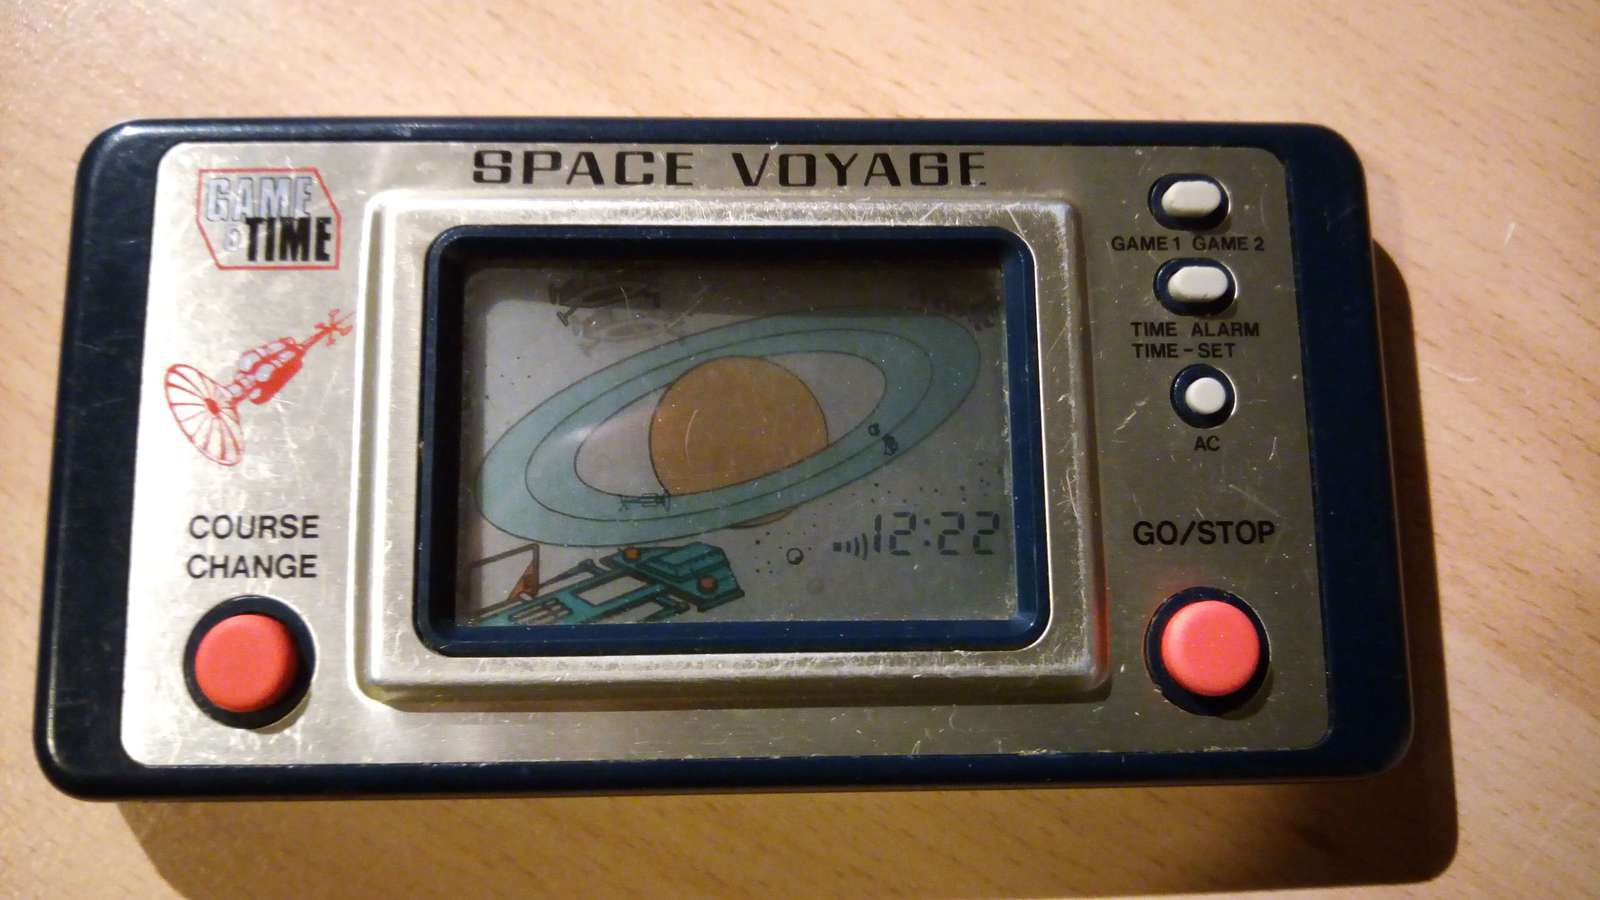 SPACE VOYAGE - GAME & TIME